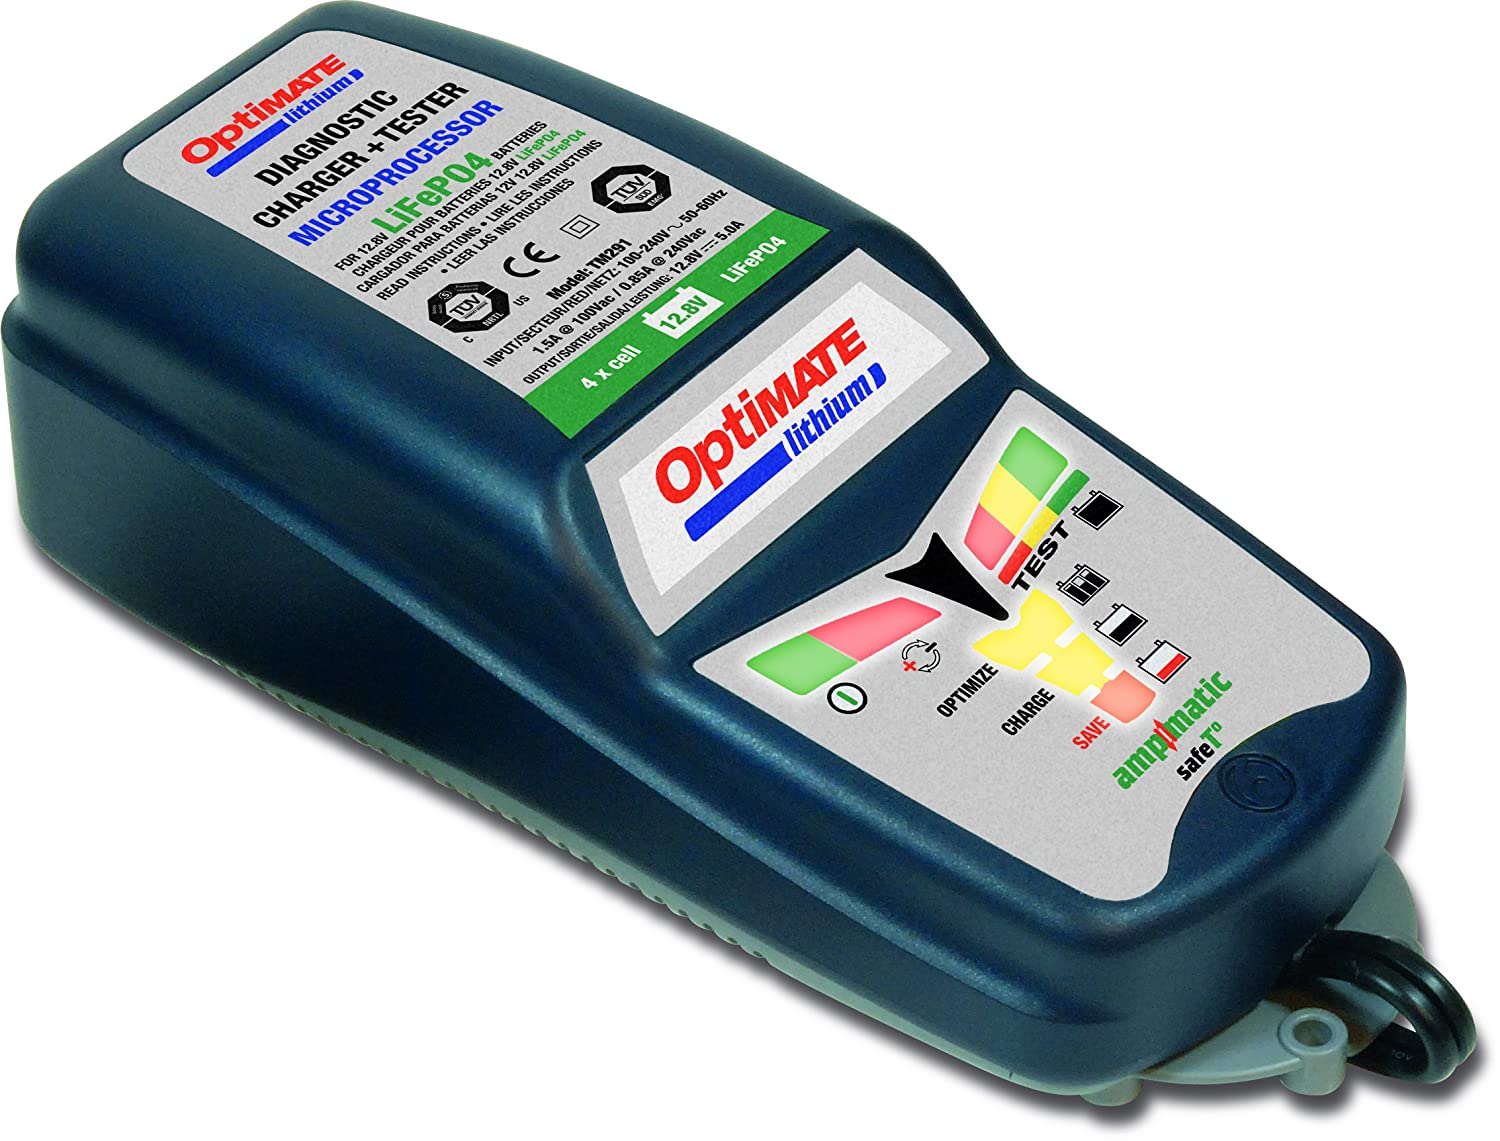 290 OptiMate Lithium Battery Charger TecMate TM